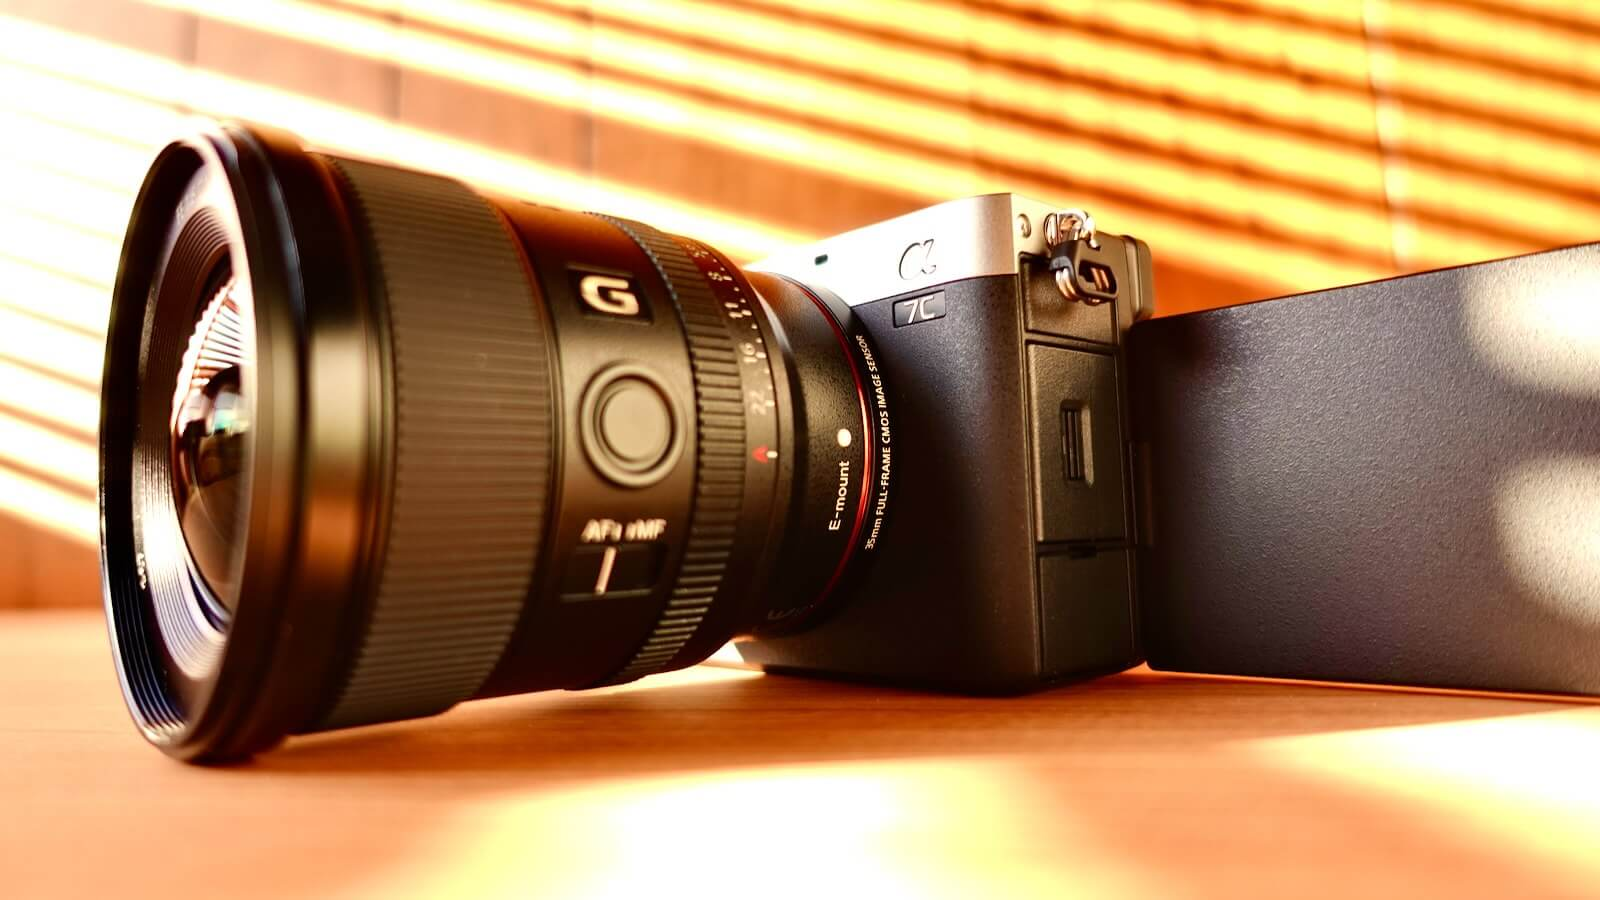 Photo of sony A7c with SEL20F18G attached